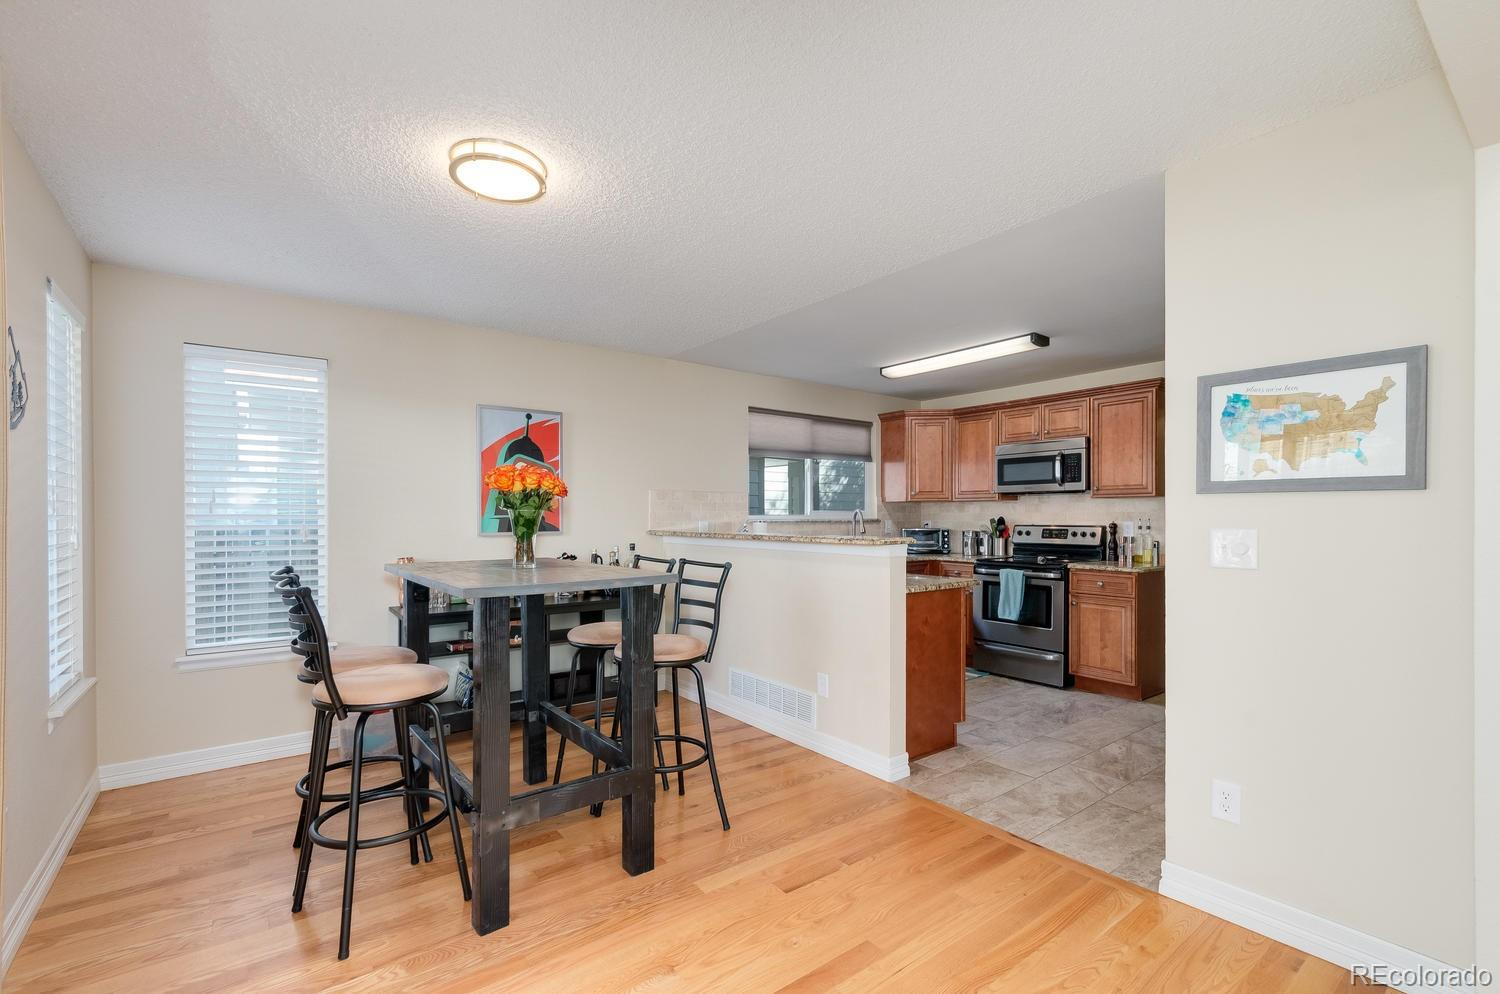 MLS# 2006537 - 11 - 5629 S Youngfield Way, Littleton, CO 80127